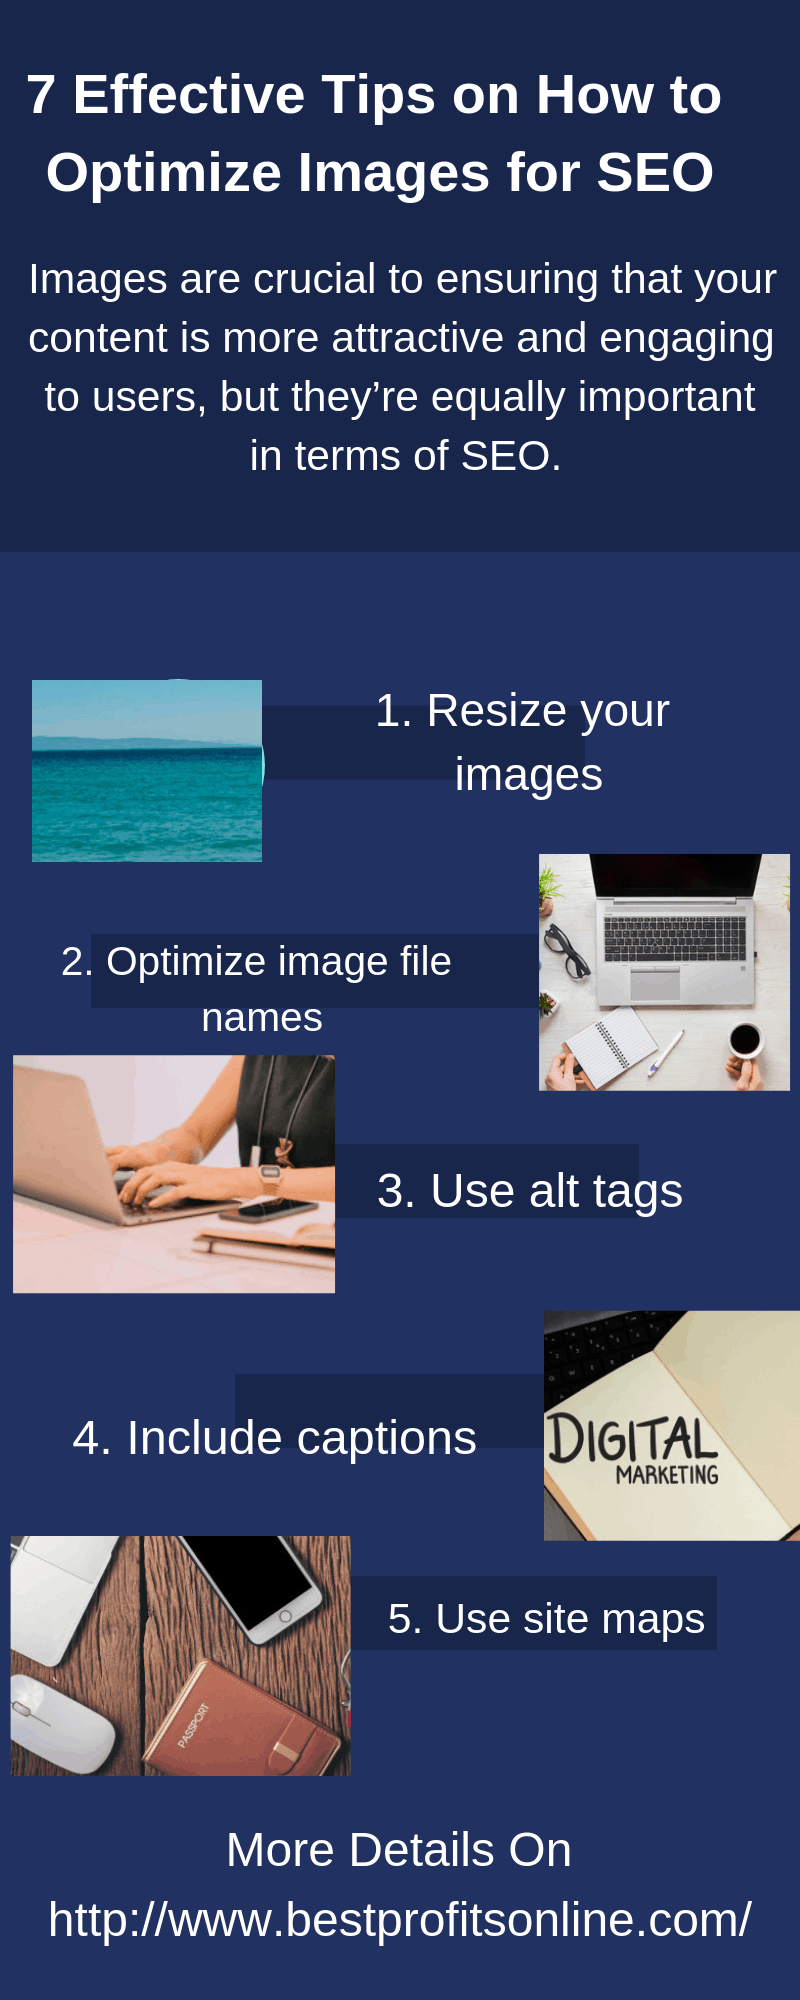 7 Effective Tips on How to Optimize Images for SEO